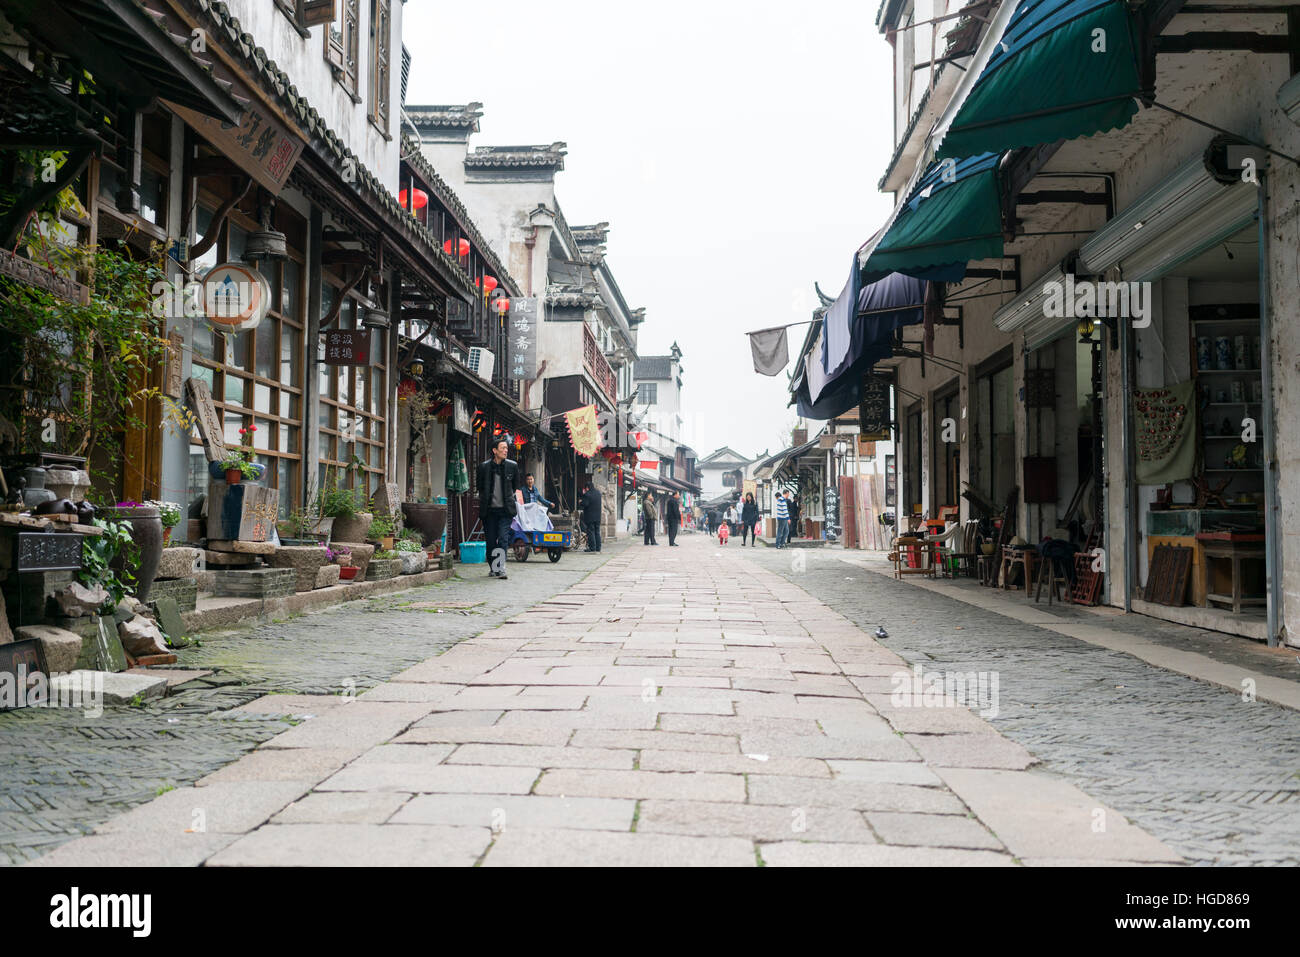 street in traditional chinese town - Stock Image